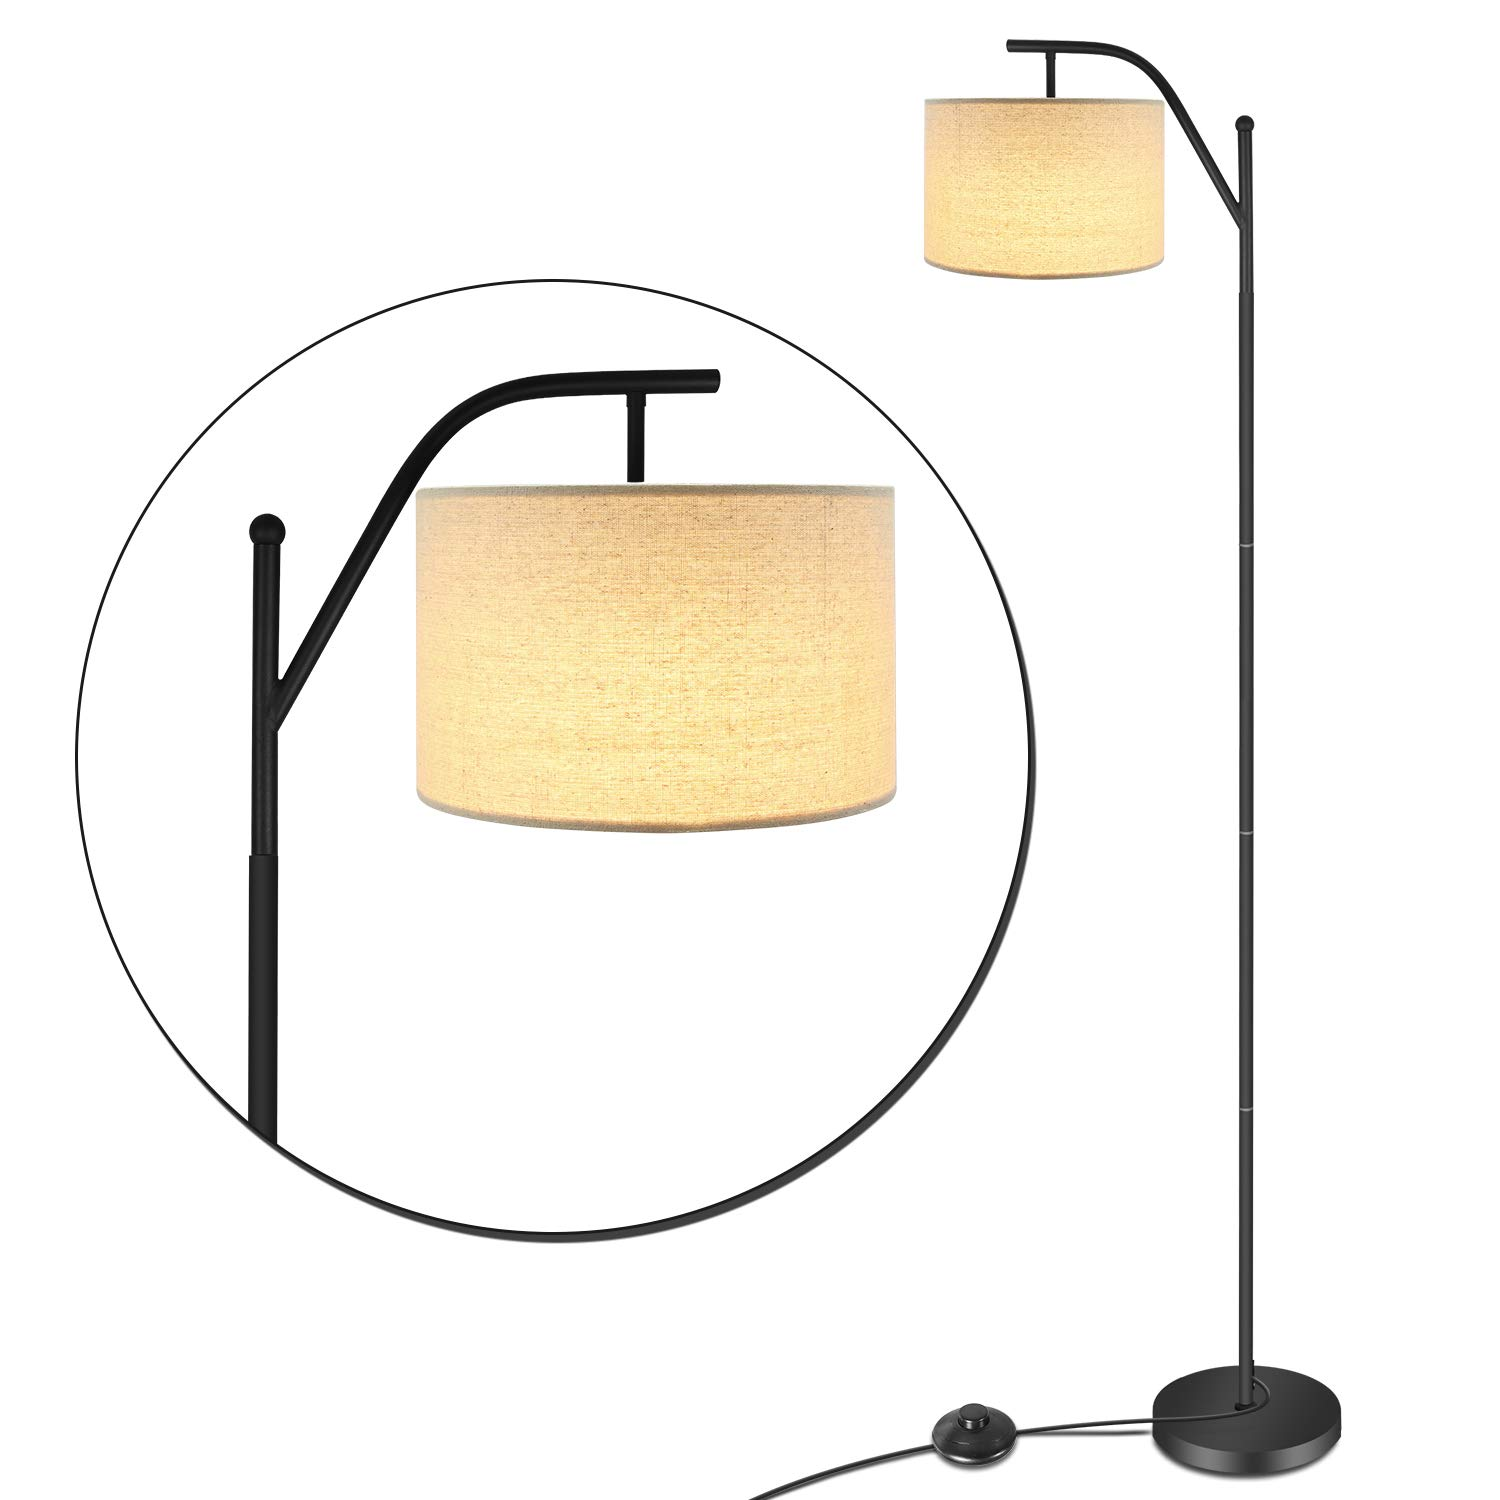 LED Floor Lamp,Anbomo Classic Standing Industrial Arc Light with Hanging Lamp Shade,Modern Floor Lamp for Bedroom, Living Roon, Study Room, Tall Pole Uplight for Office